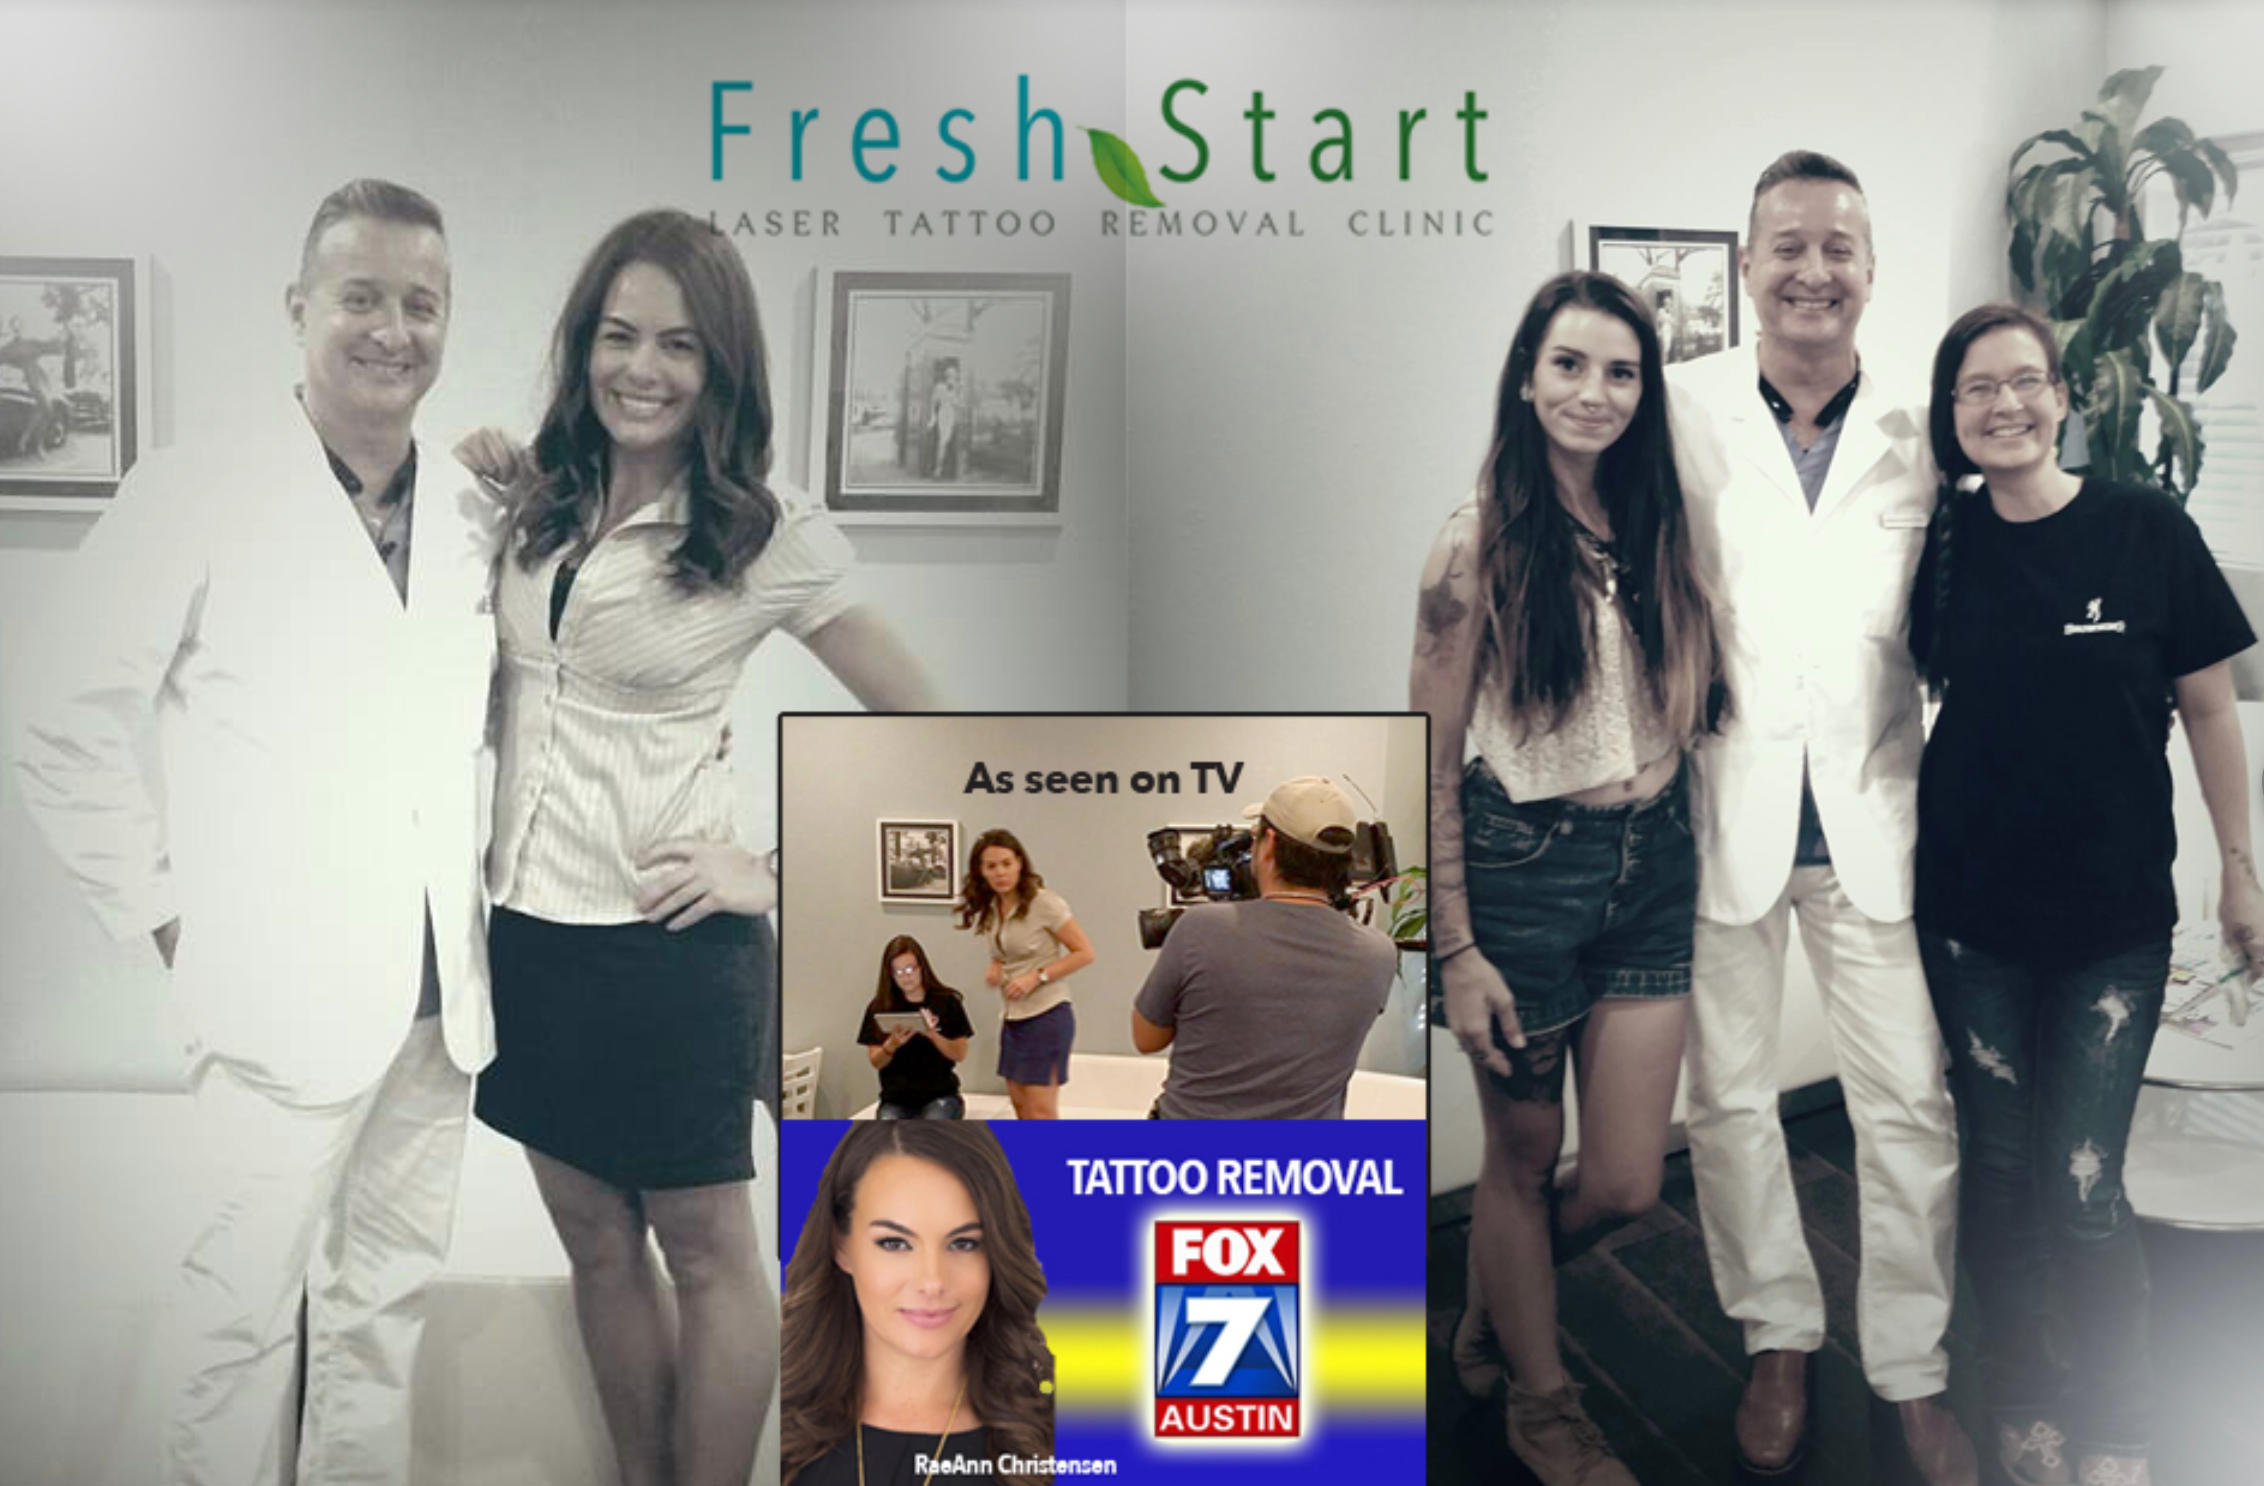 Fresh Start Laser Tattoo Removal Clinic image 1